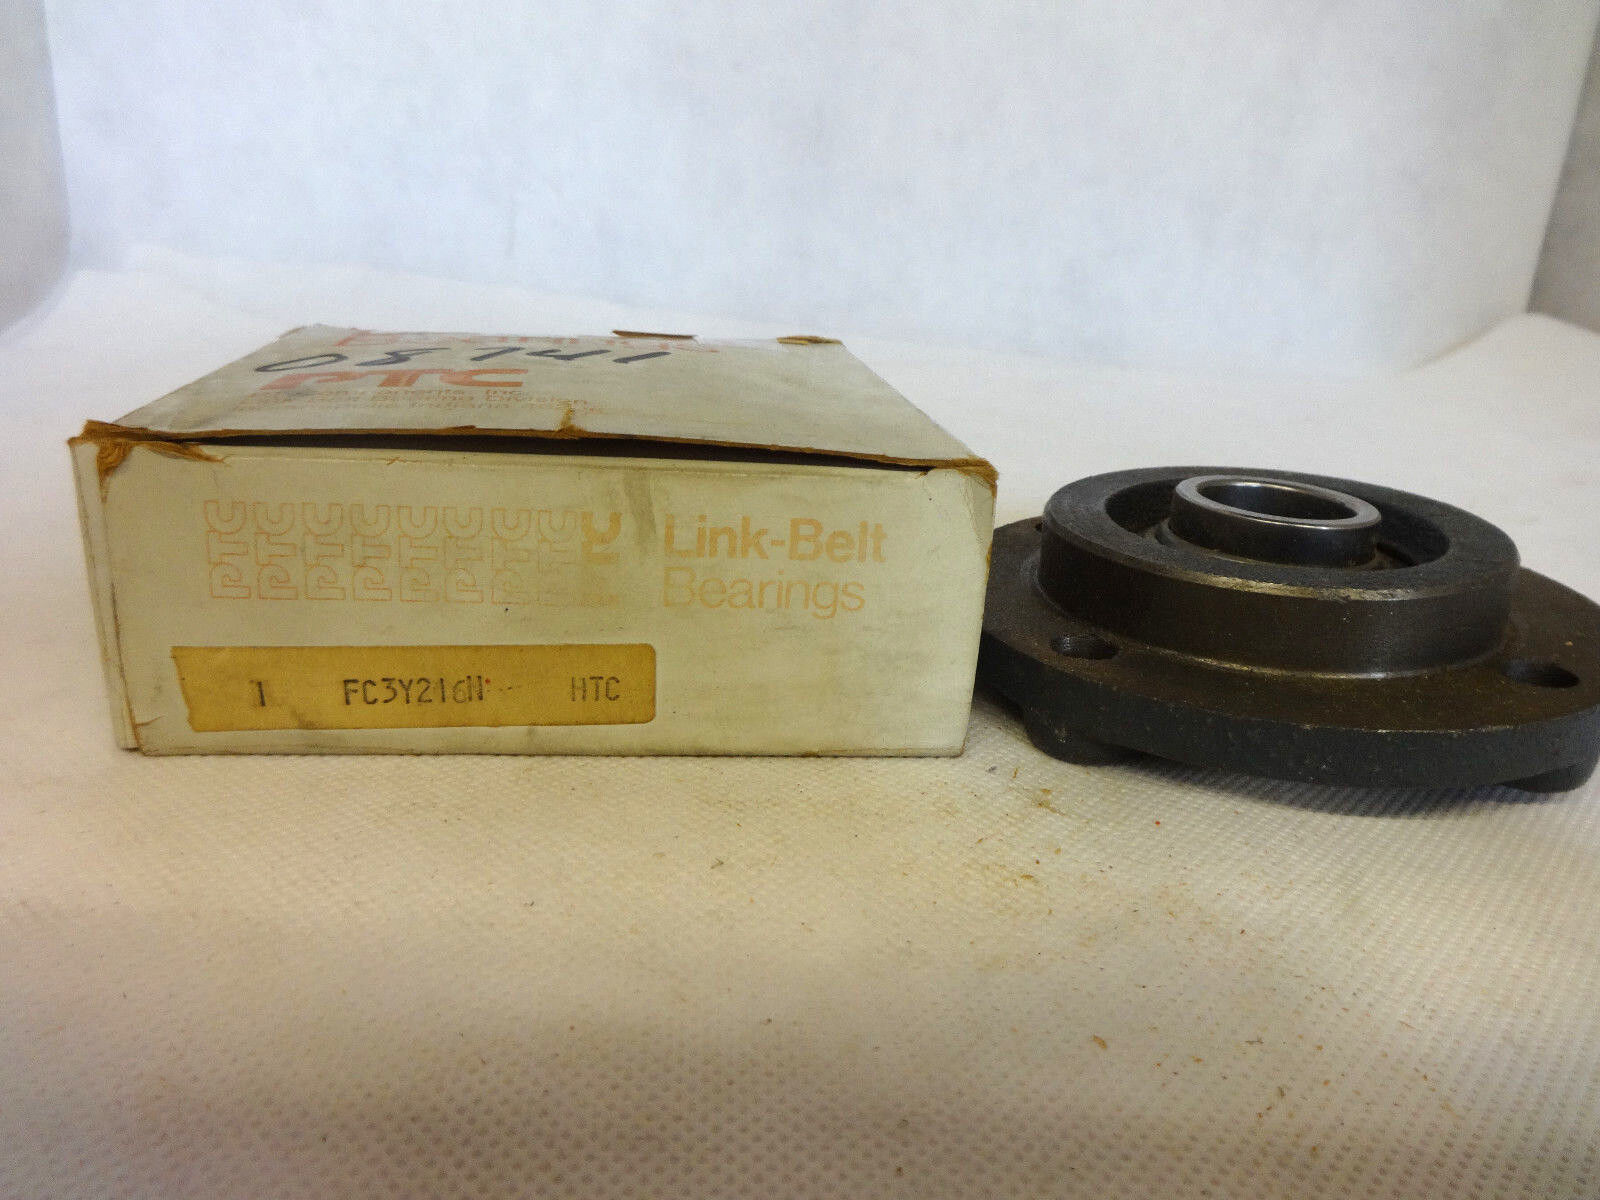 NEW IN BOX LINK-BELT FC3Y216N BALL BEARING FLANGE UNIT SIZE 1